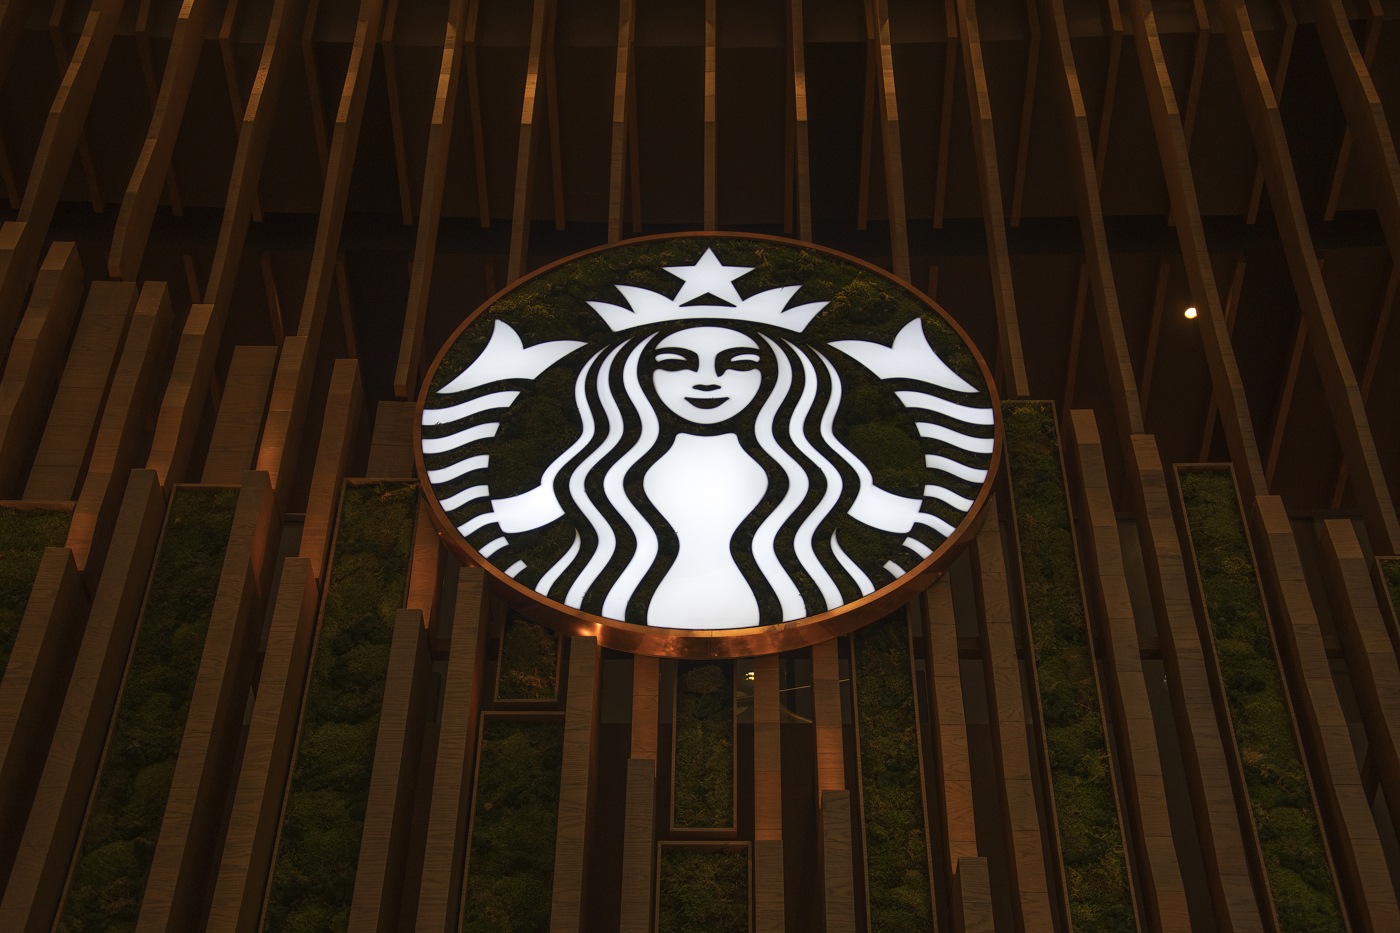 Starbucks stock, SBUX stock, restaurant stocks